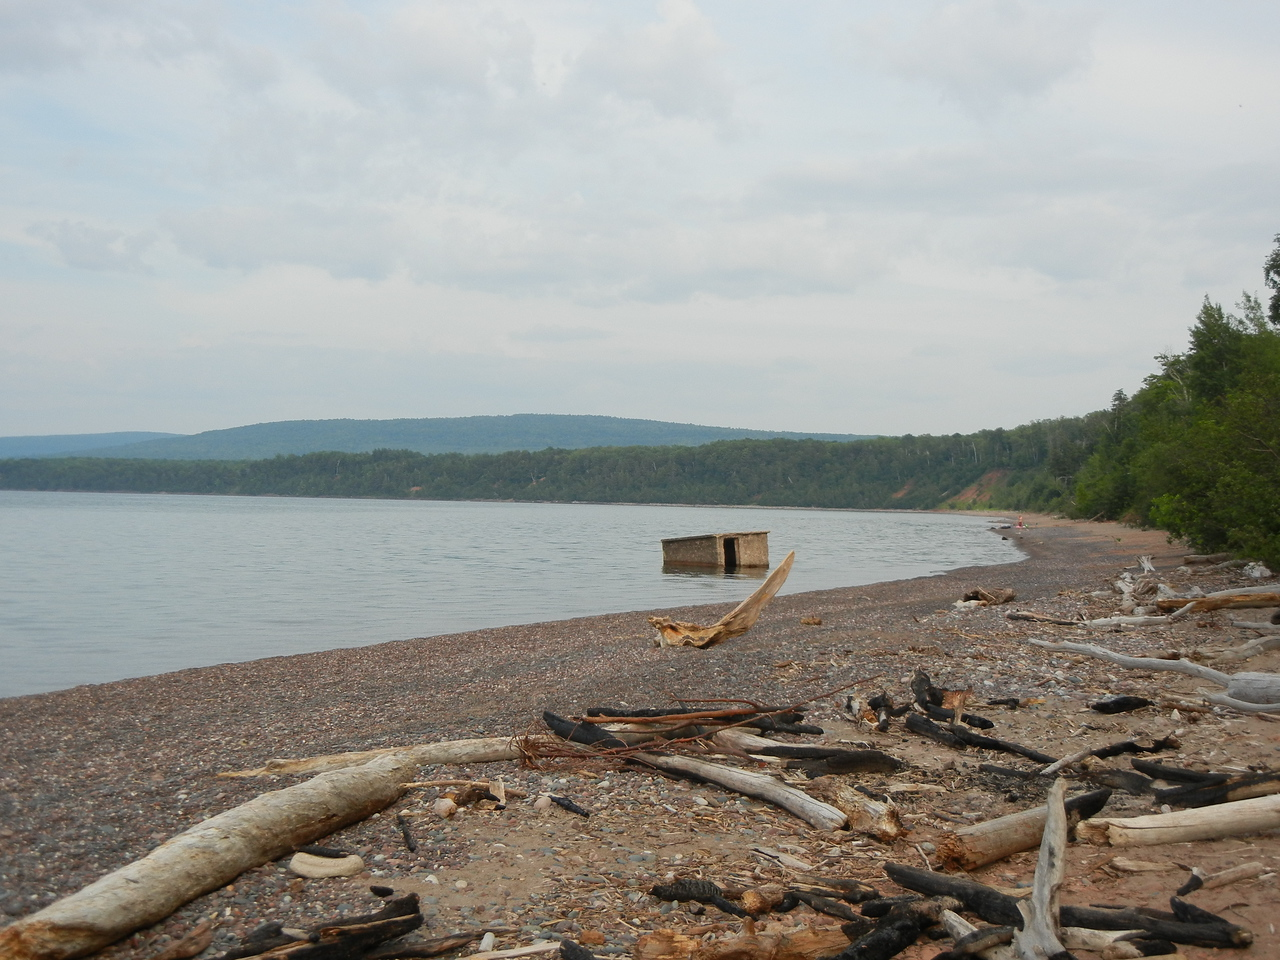 The shore at LIttle Girl Point campground